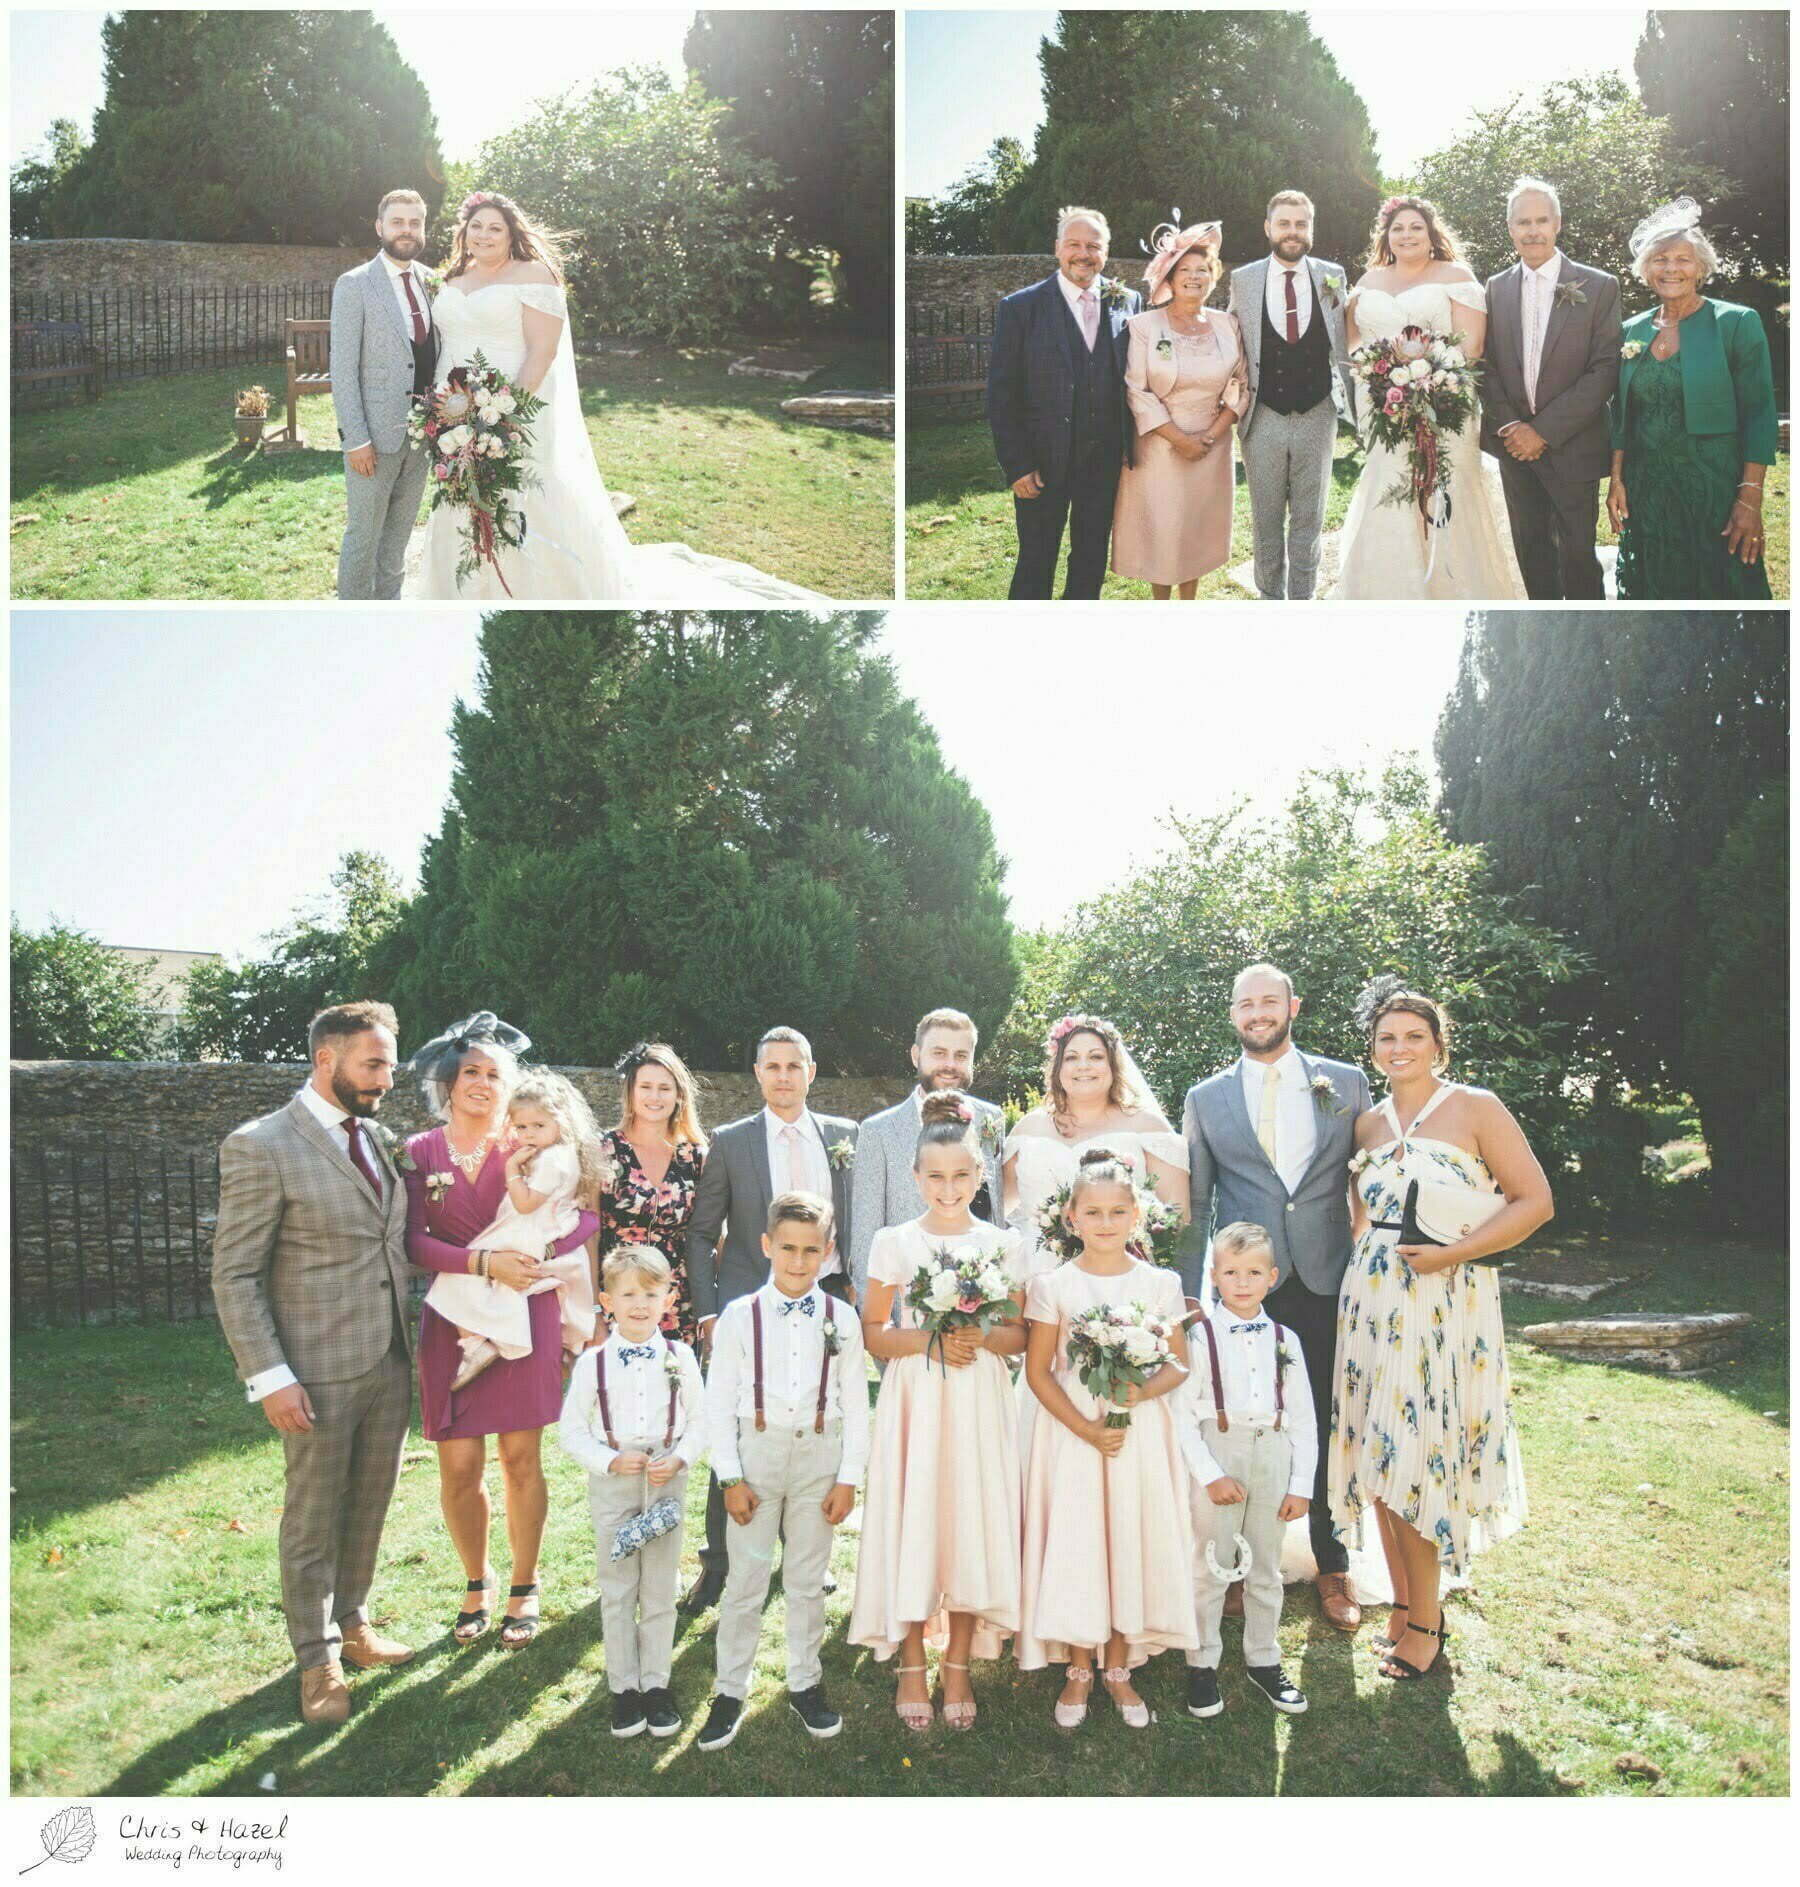 Weding formal family photographs outside the church, Hilperton Church, St Michael & All Angels' Church, Wedding Photography, Wiltshire Wedding Photographer Trowbridge, Chris and Hazel Wedding Photography